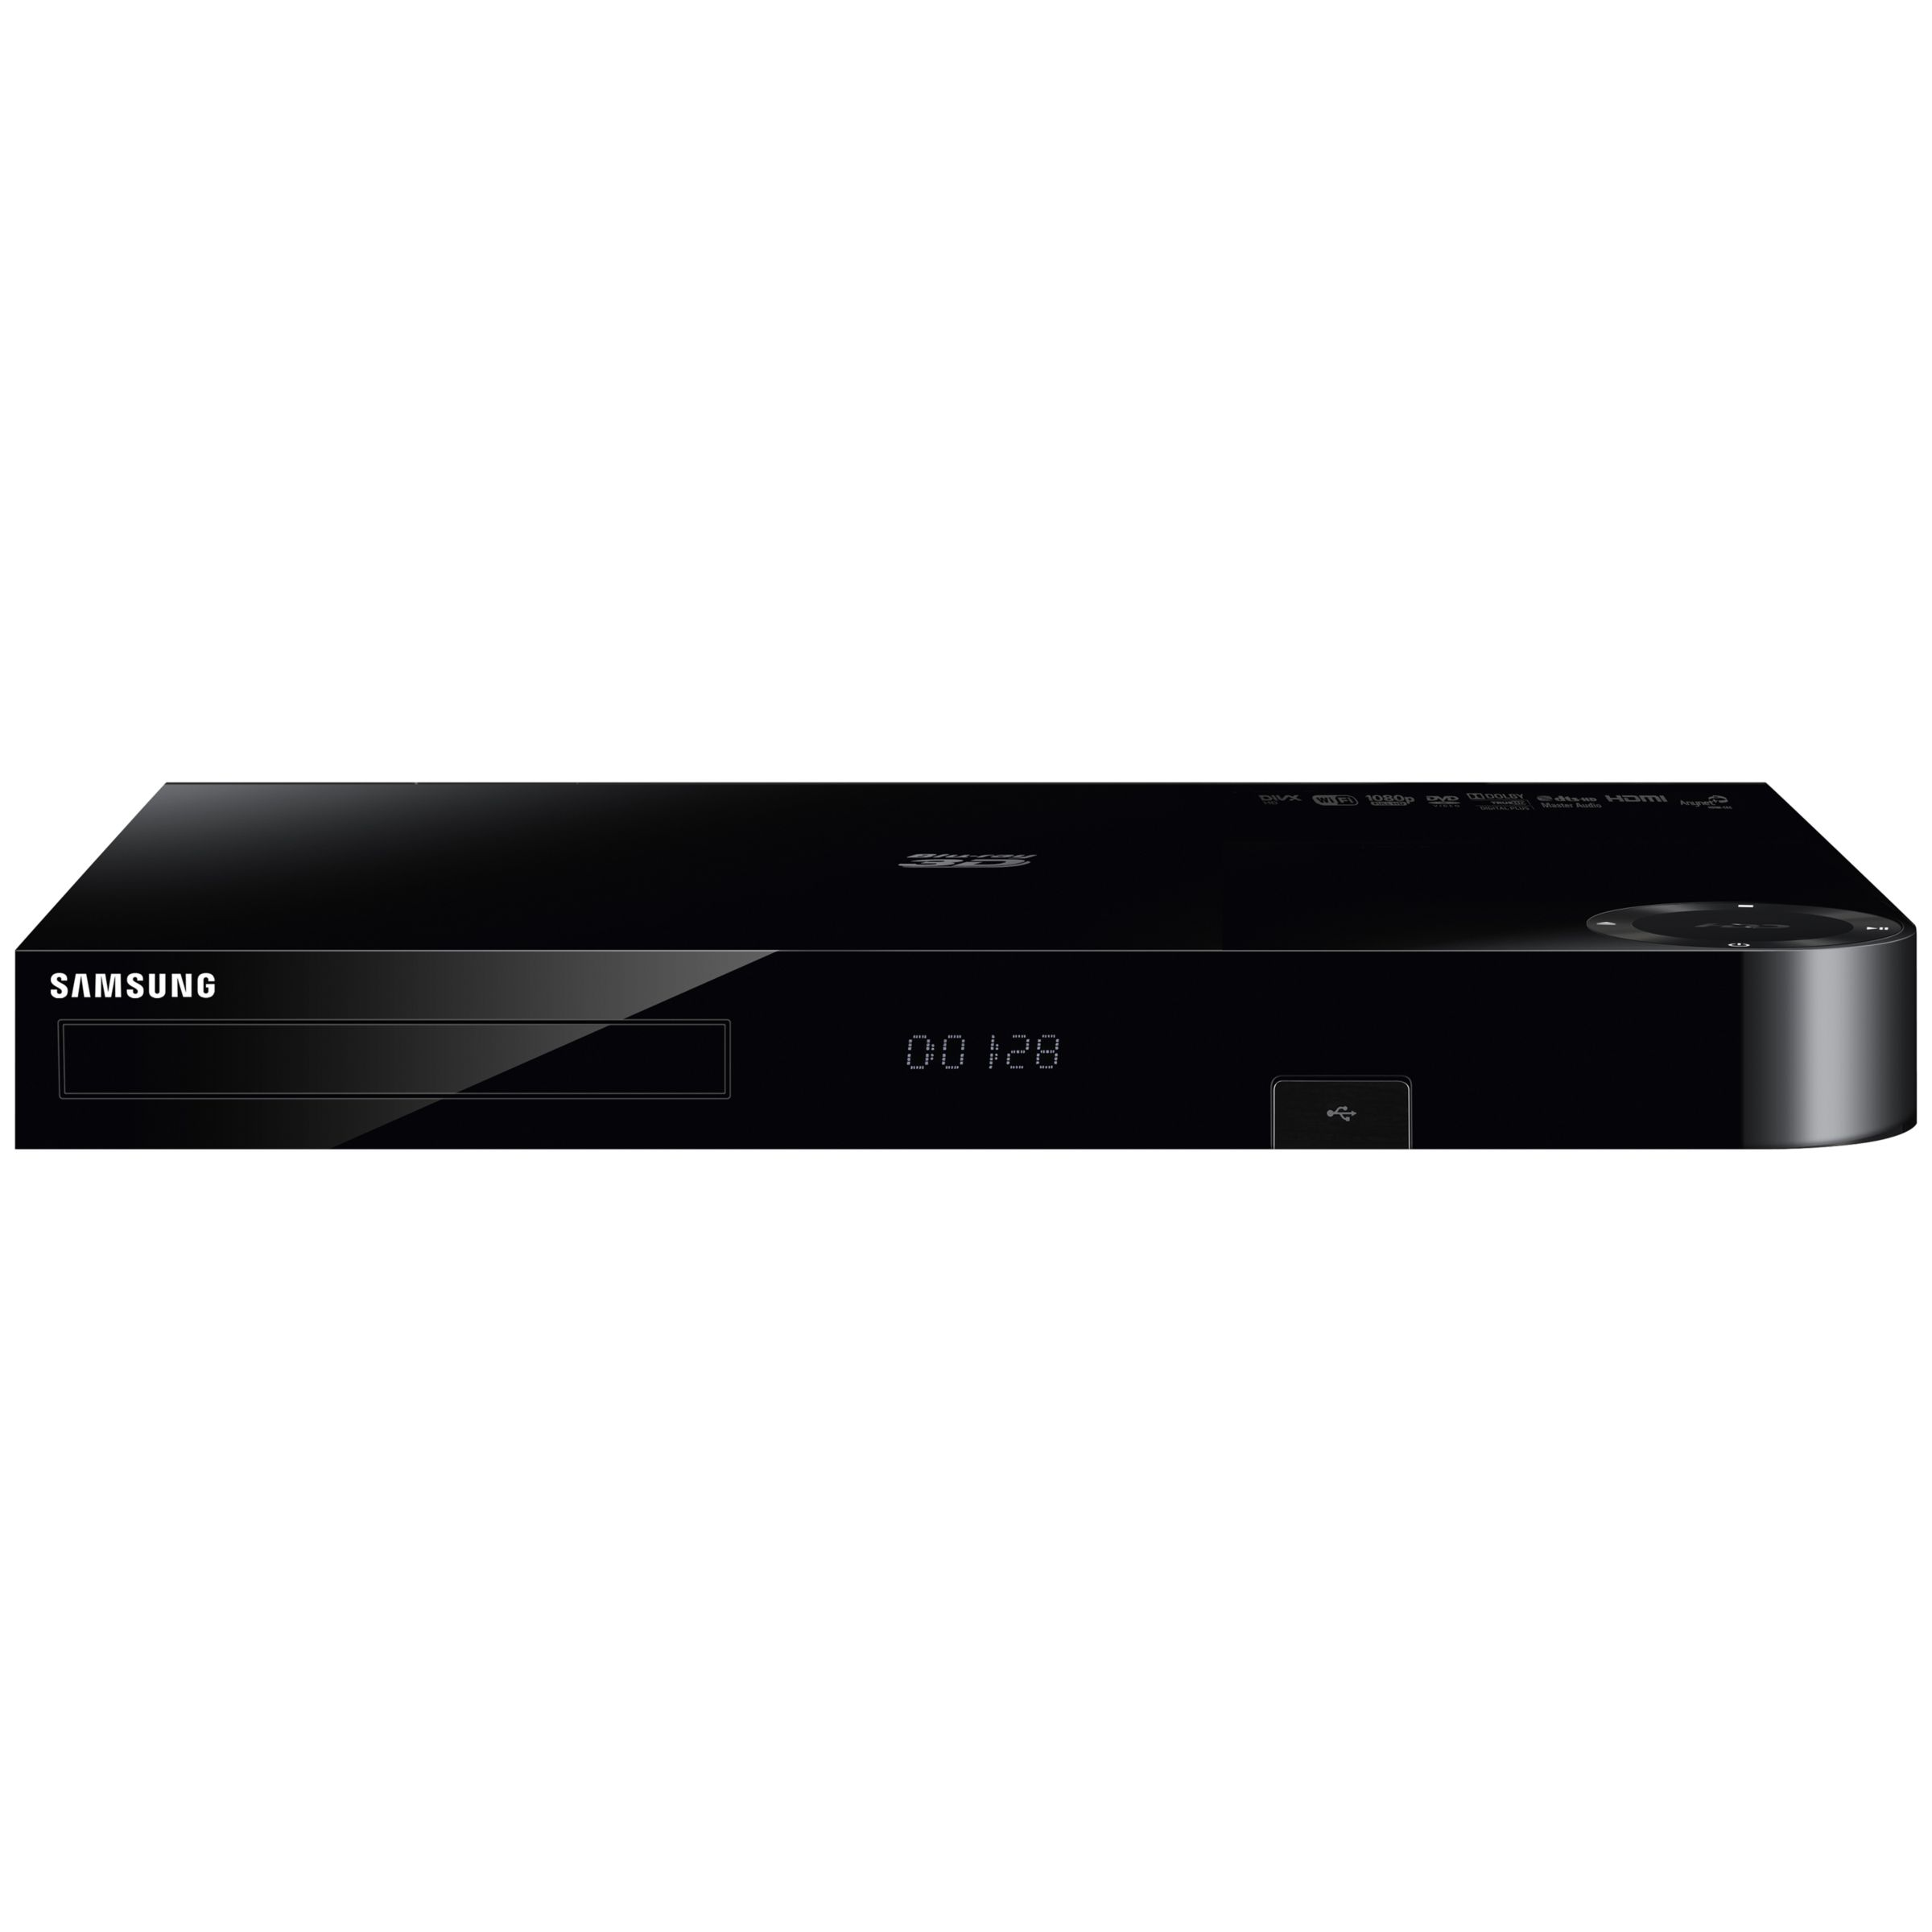 Ongekend Samsung BD-H8500 Smart 3D Blu-ray/DVD/HDD 500GB Freeview HD DL-47